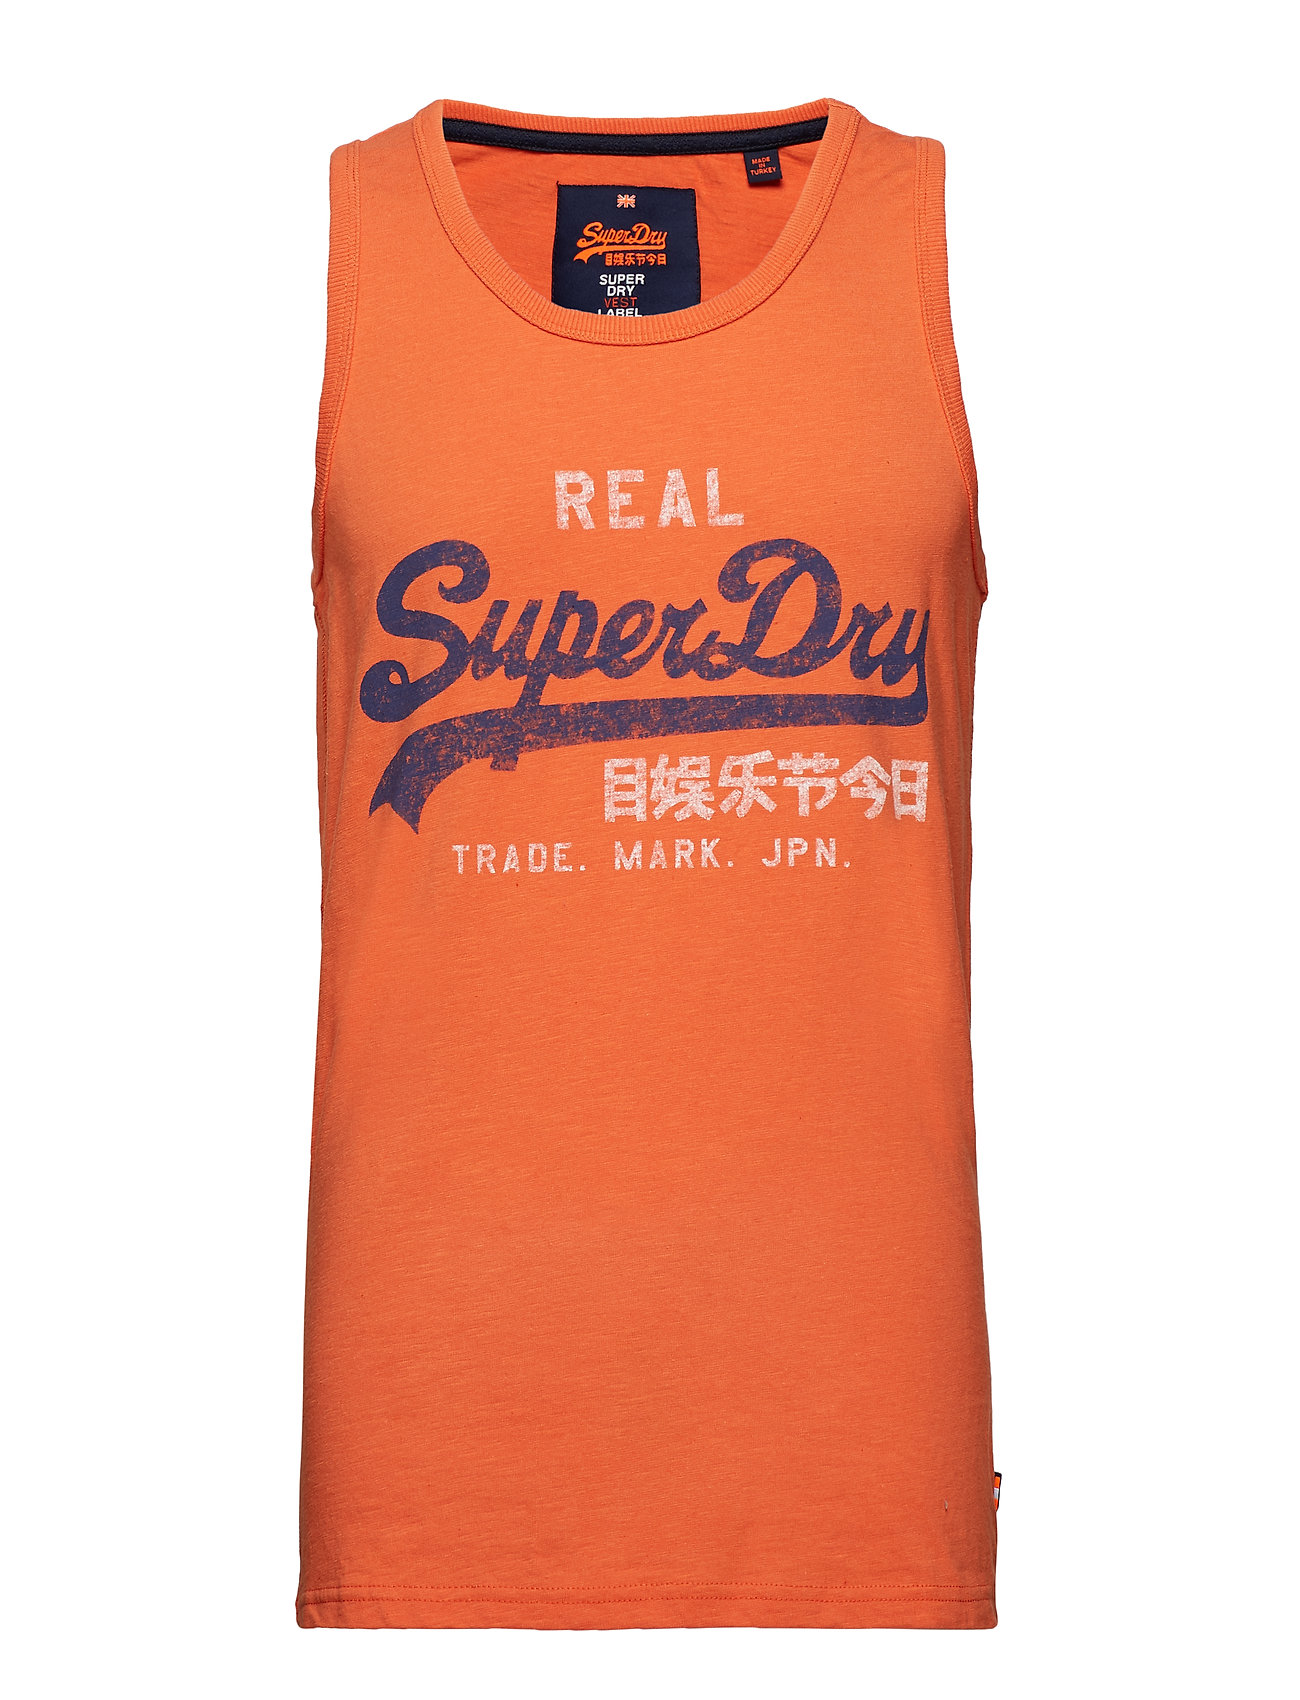 Vintage Logo Duo Entry Vest Tanktop Top Orange SUPERDRY